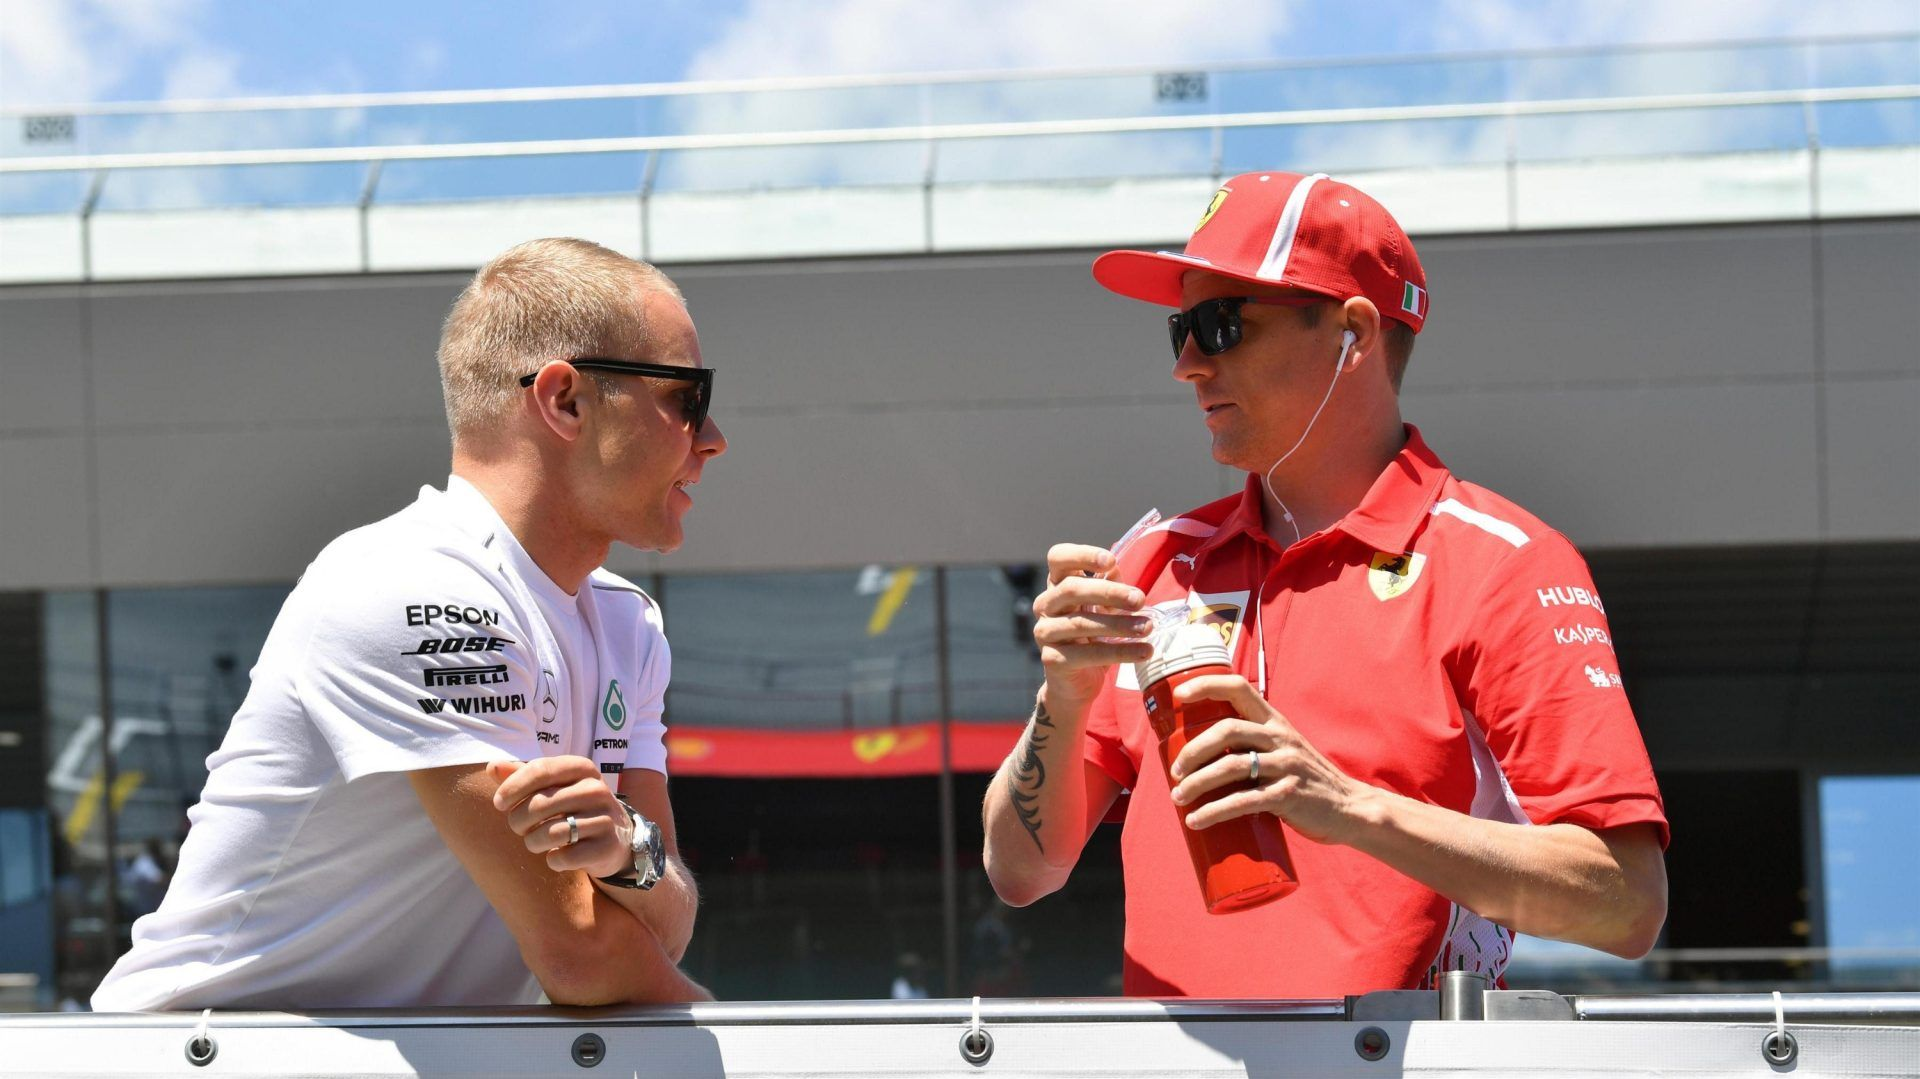 Mika Hakkinen on Valtteri Bottas and Kimi Raikkonen